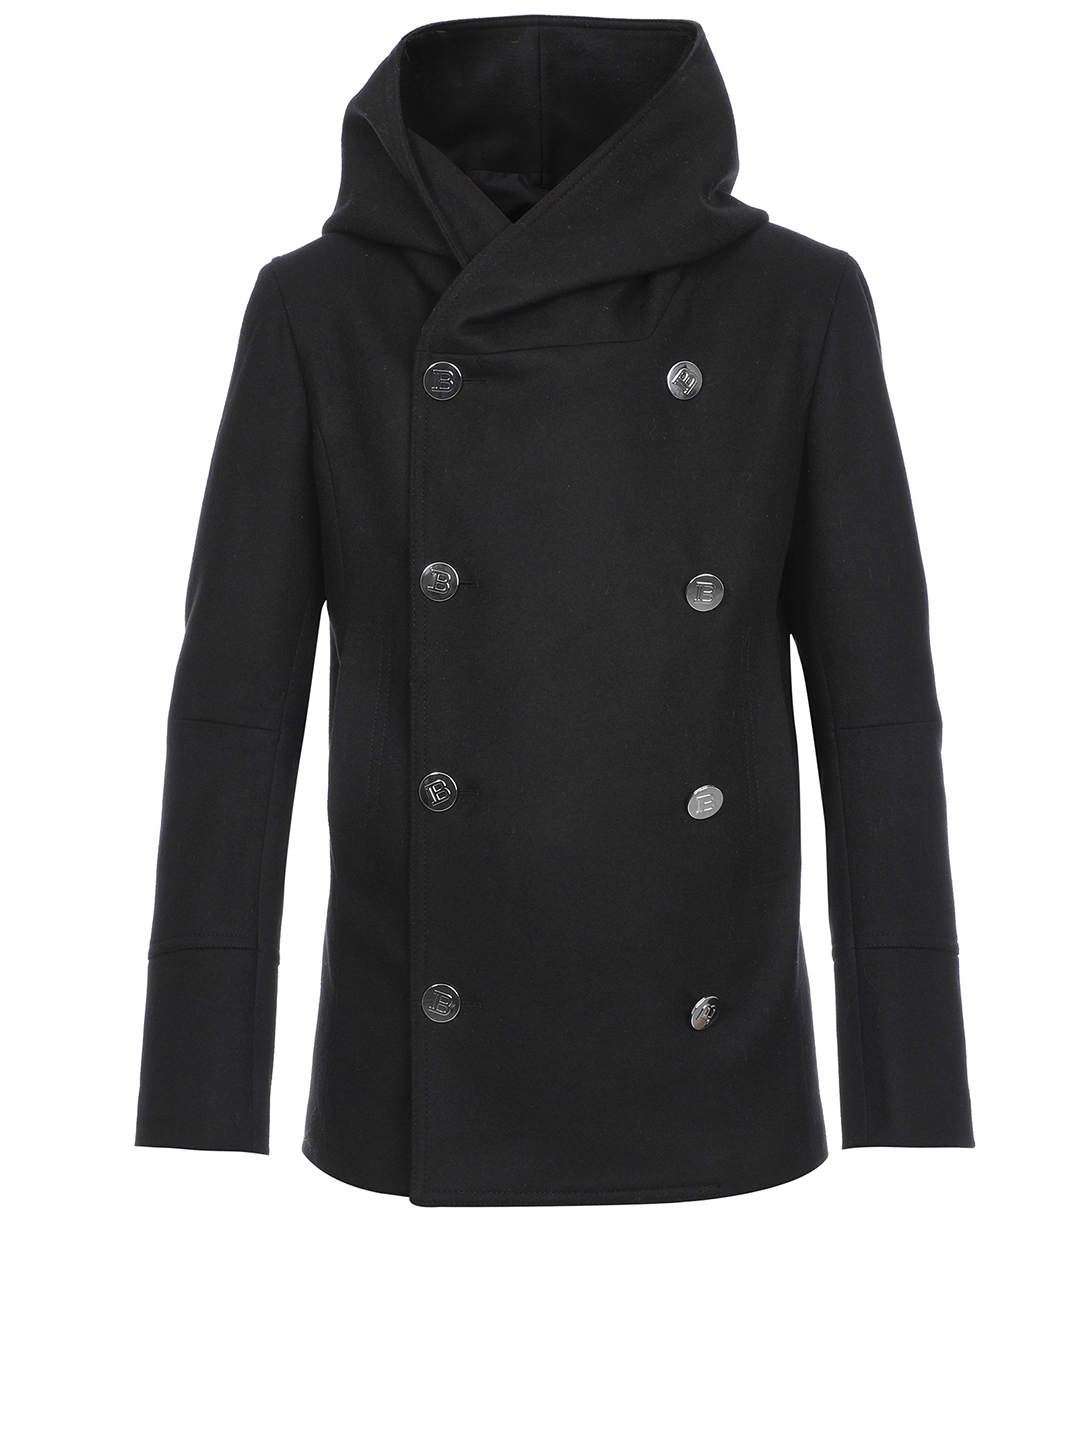 BALMAIN Wool-Blend Double-Breasted Pea Coat With Hood Men's Black